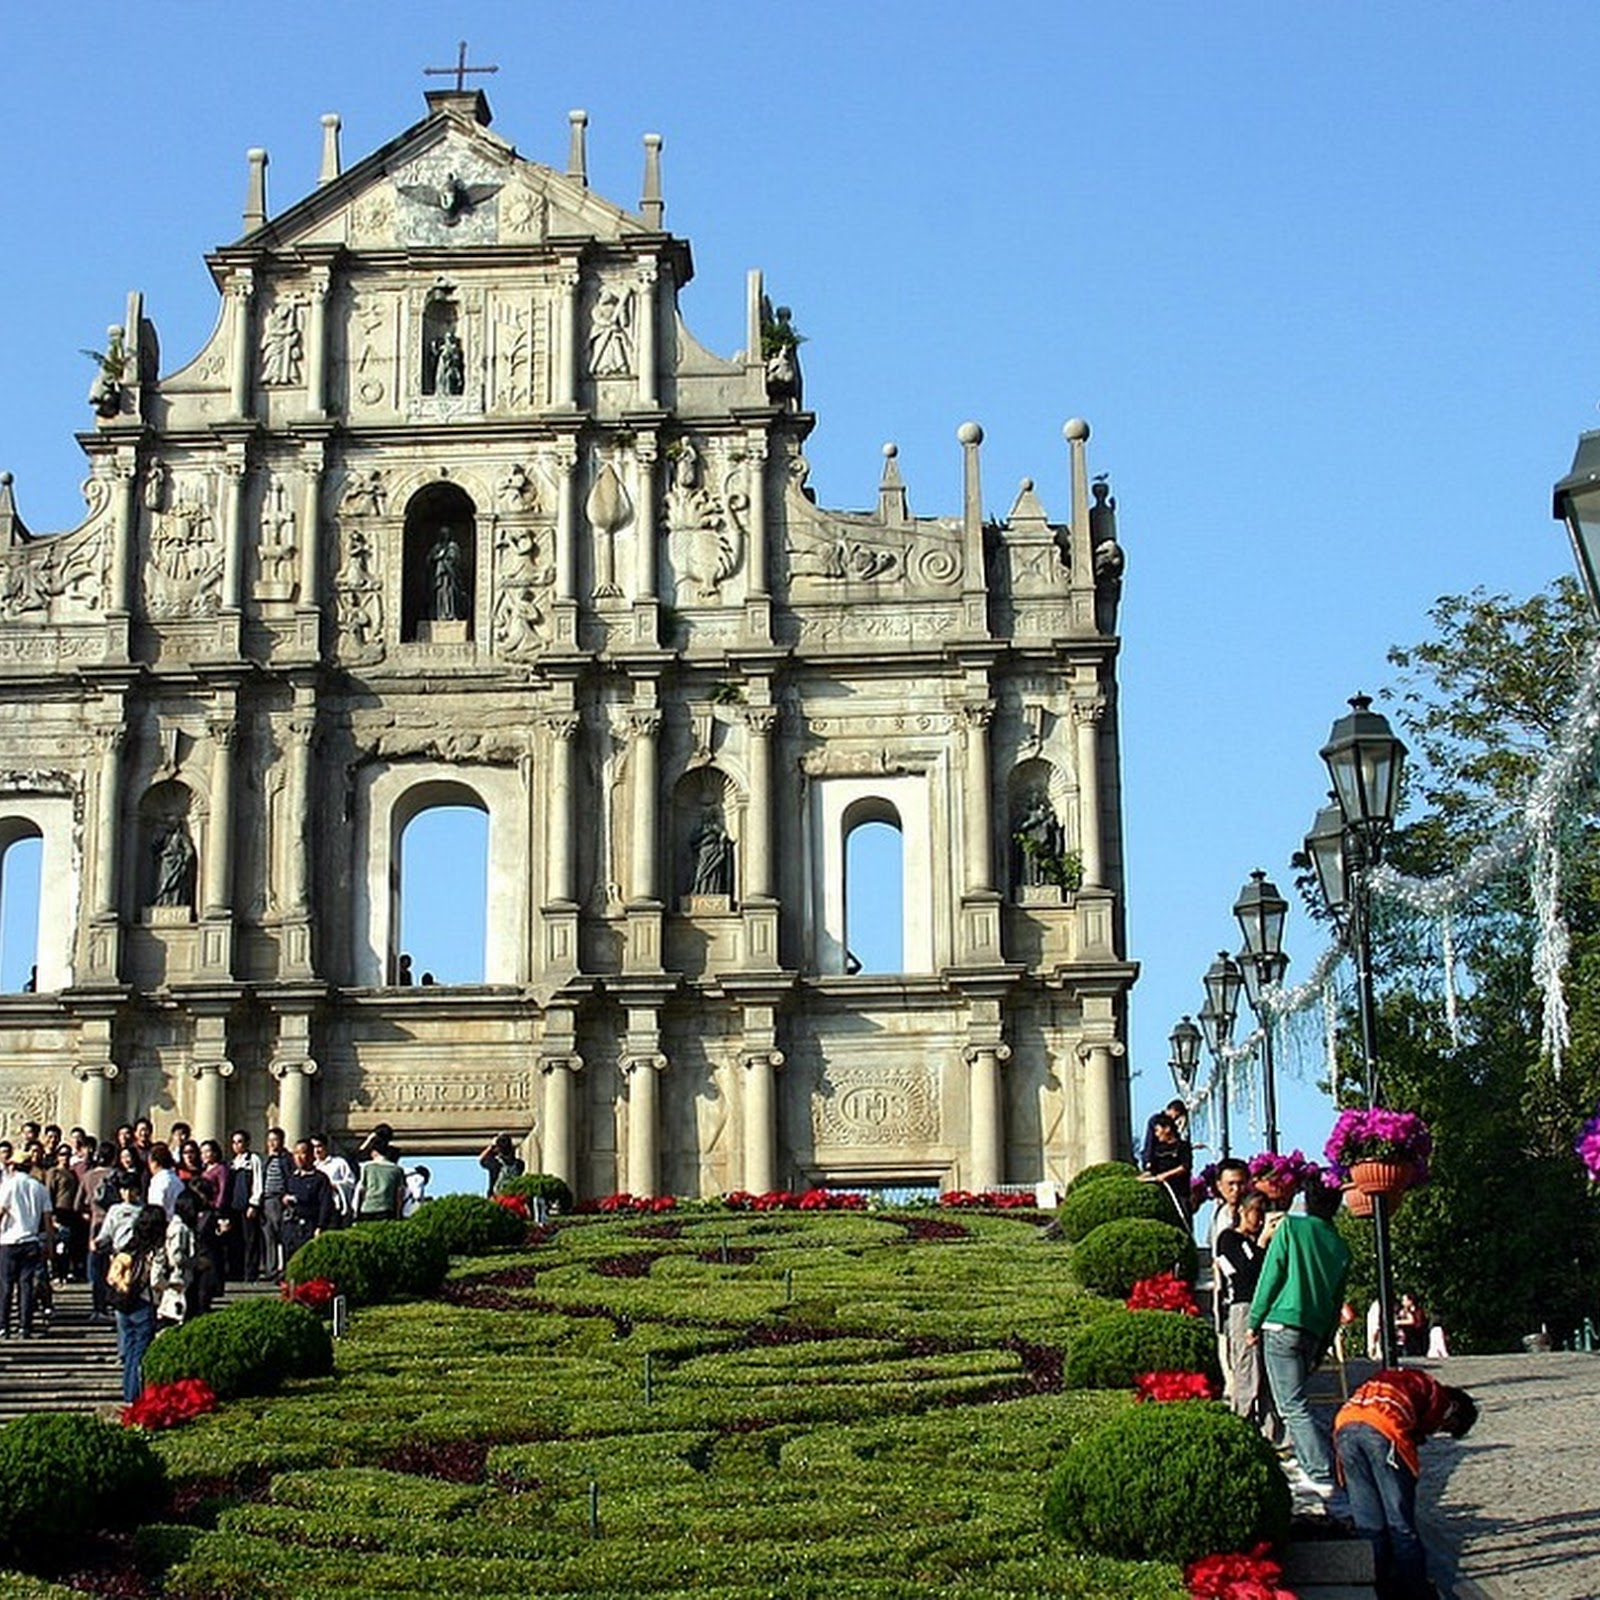 The Ruins of St. Paul's Church, Macau